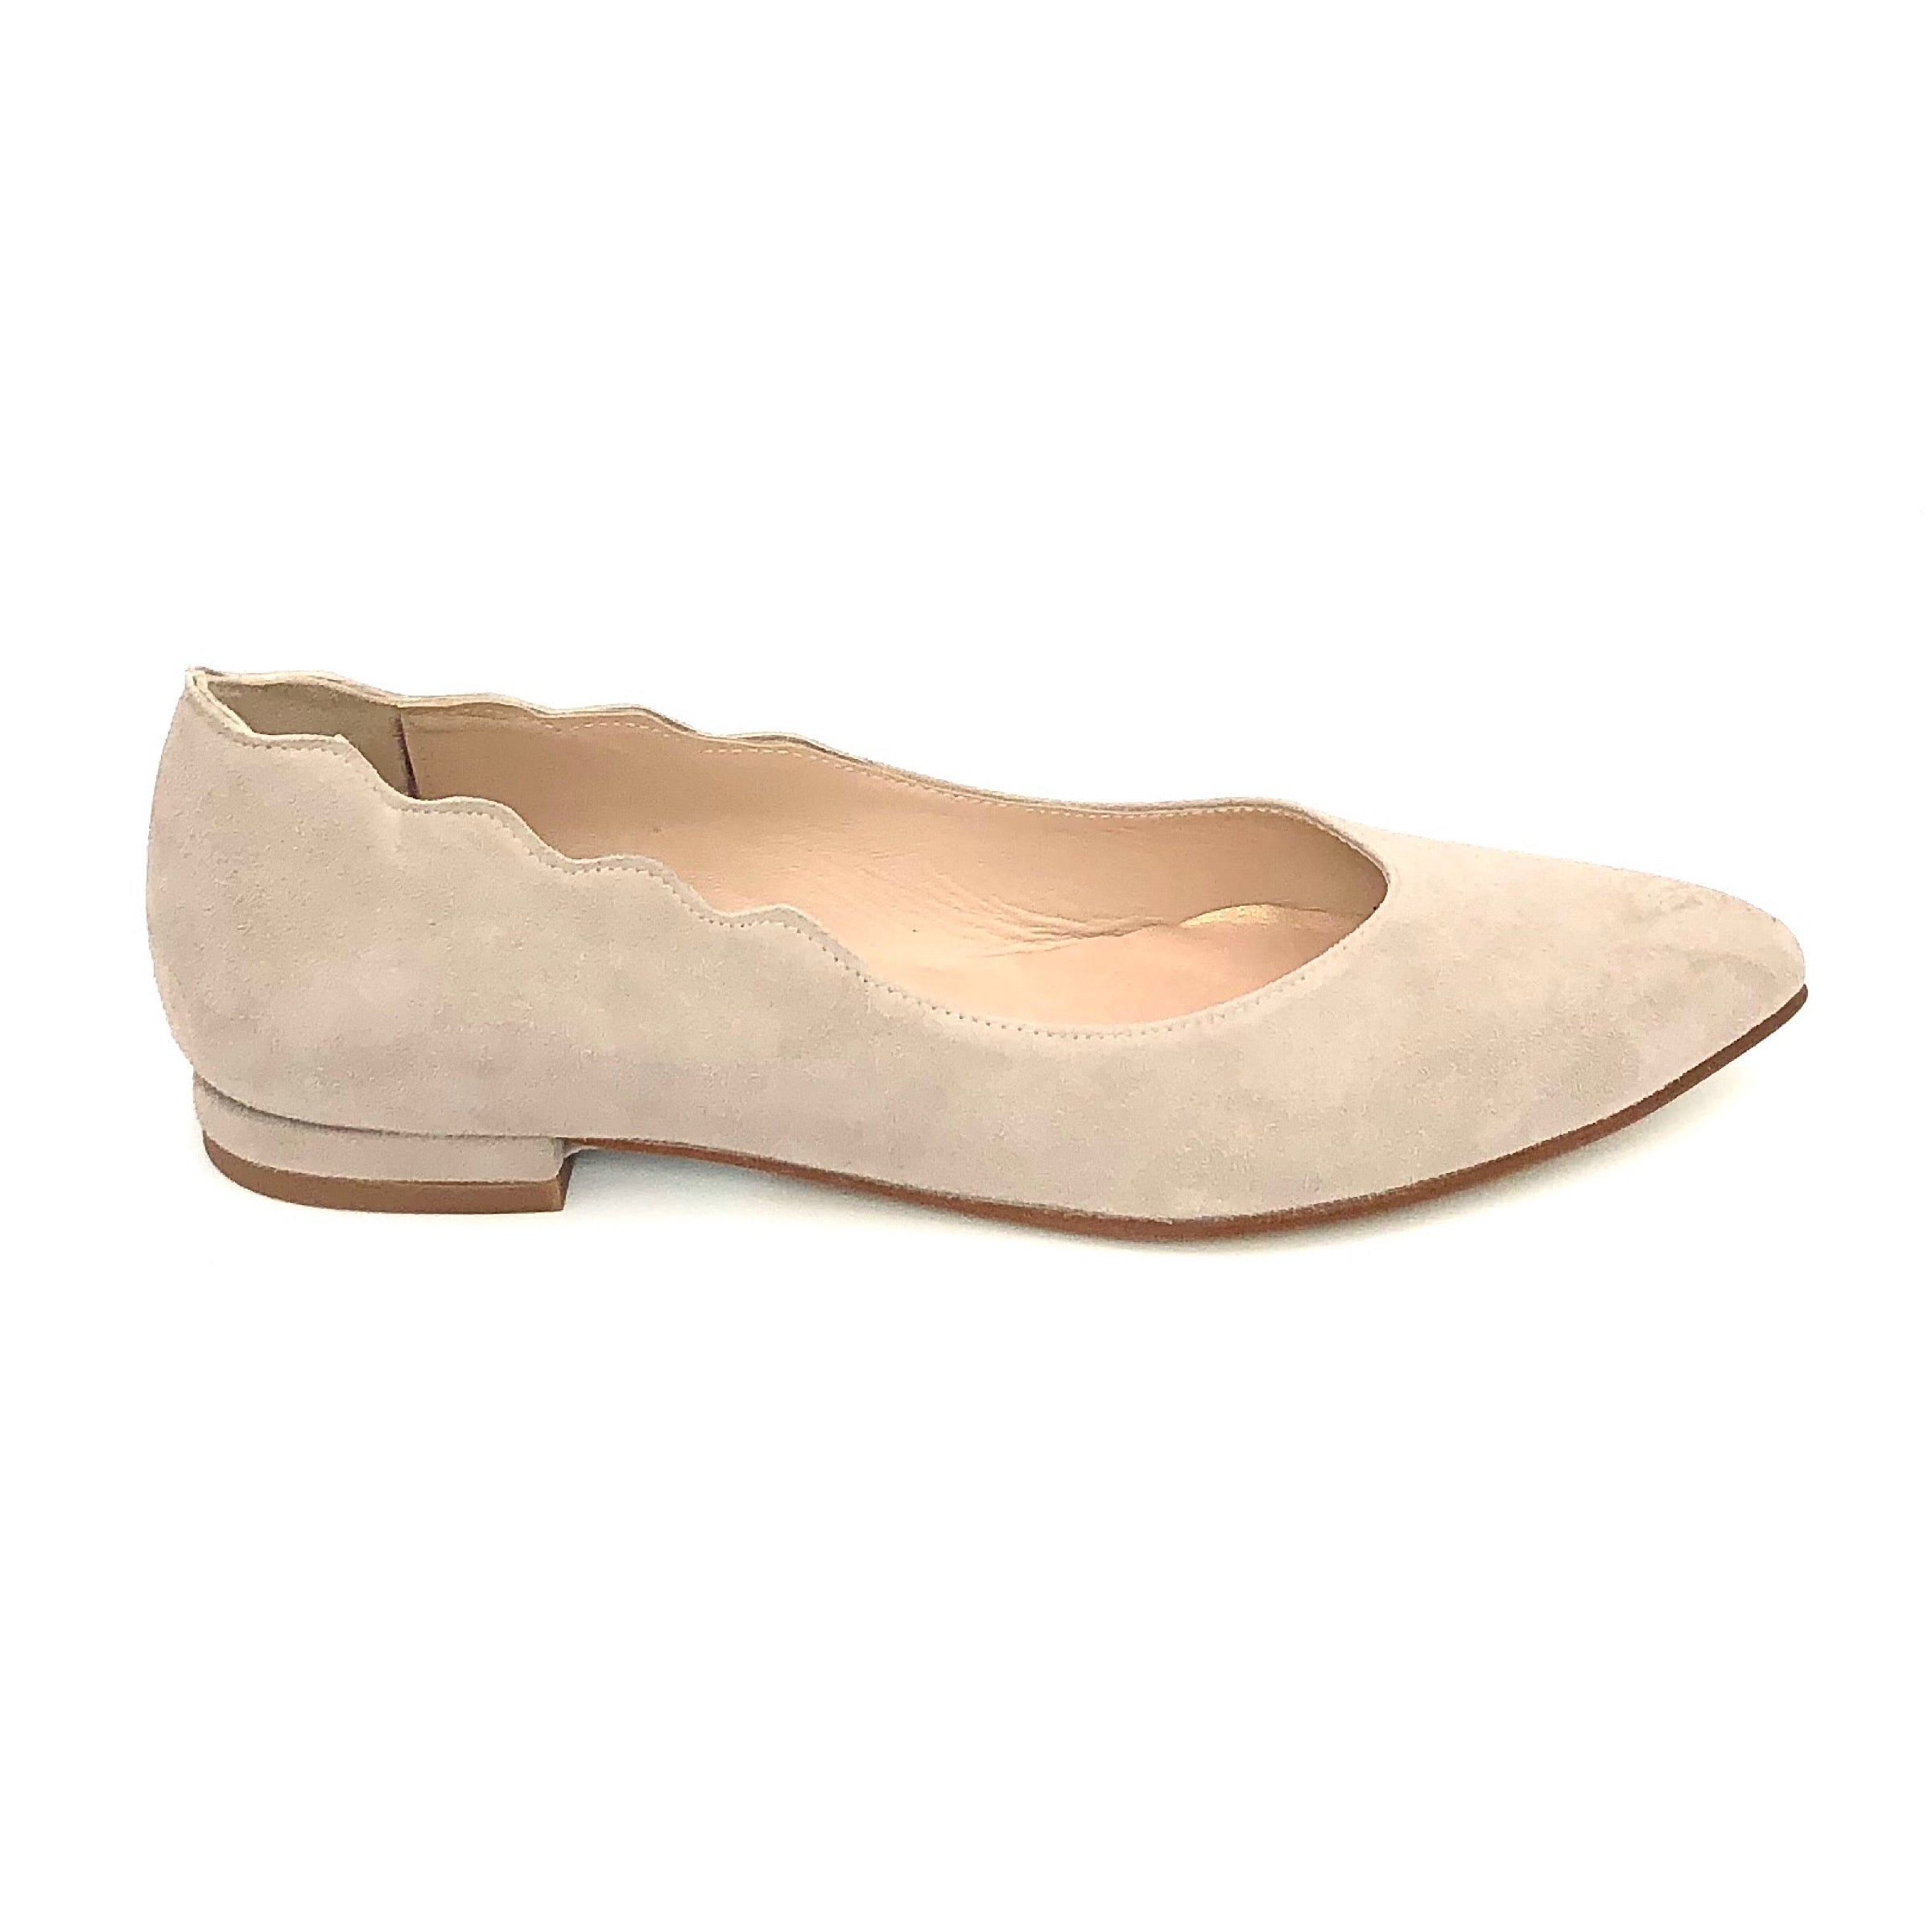 The Almond Flat with Scallop Edge in Taupe